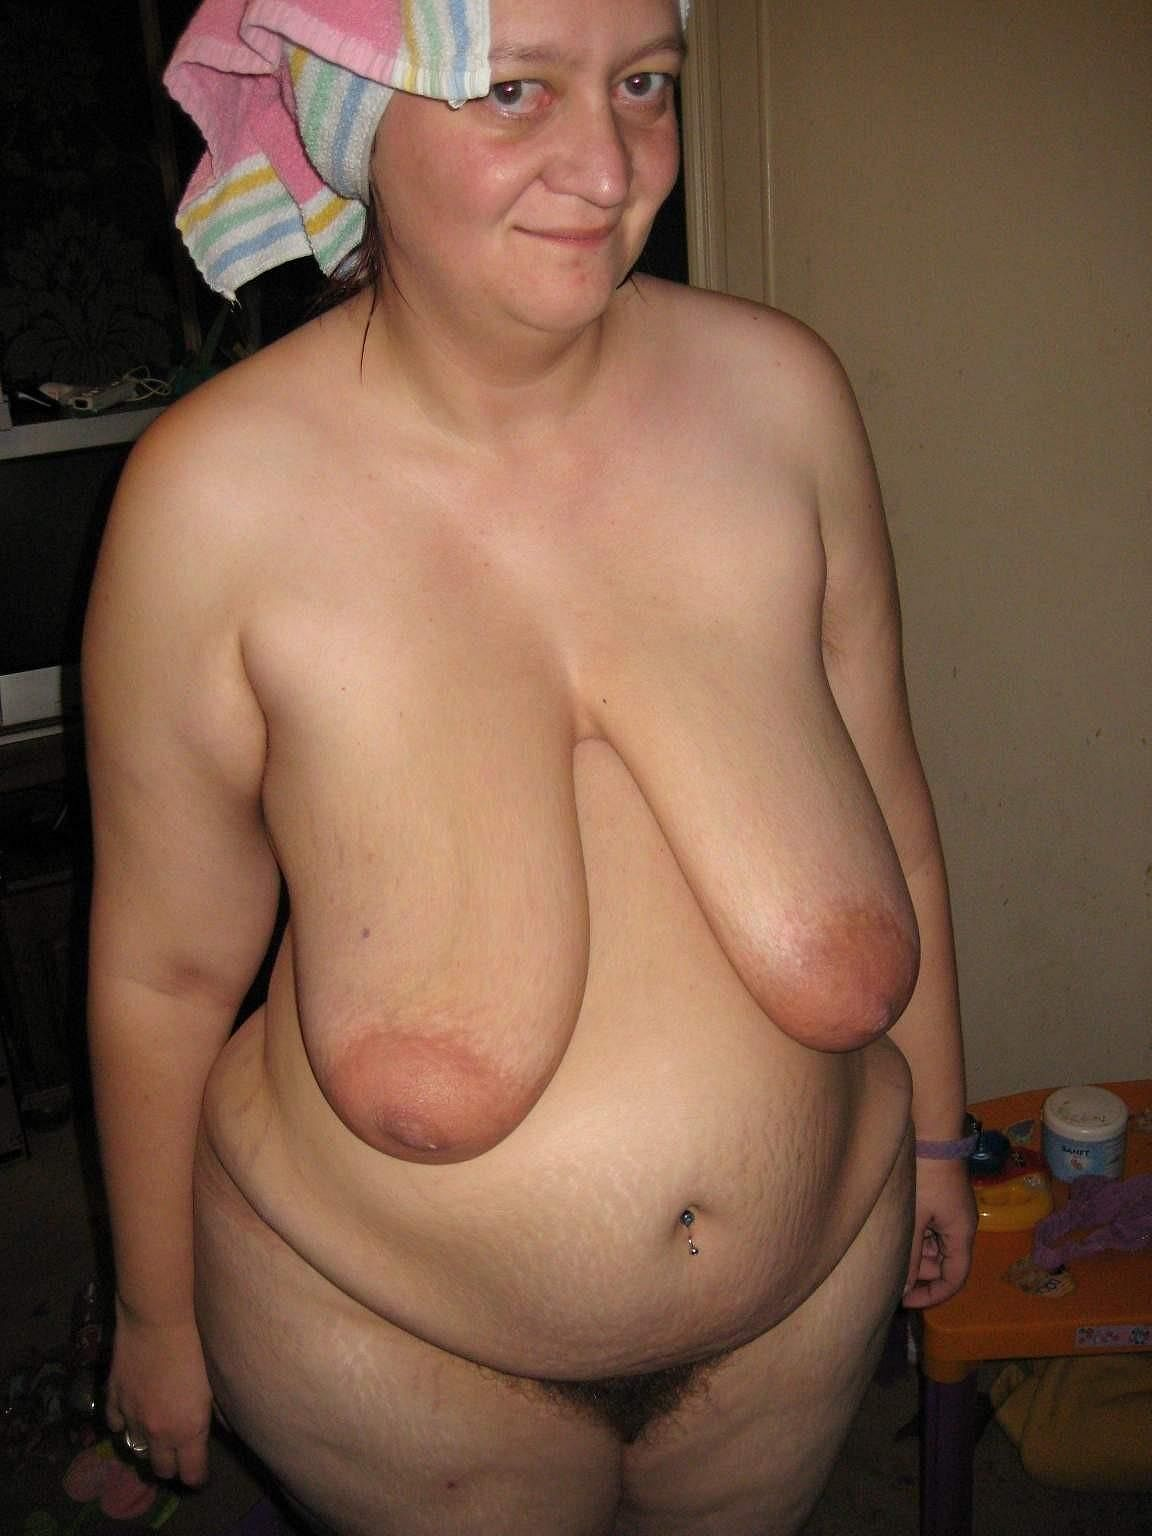 huge saggy tit: